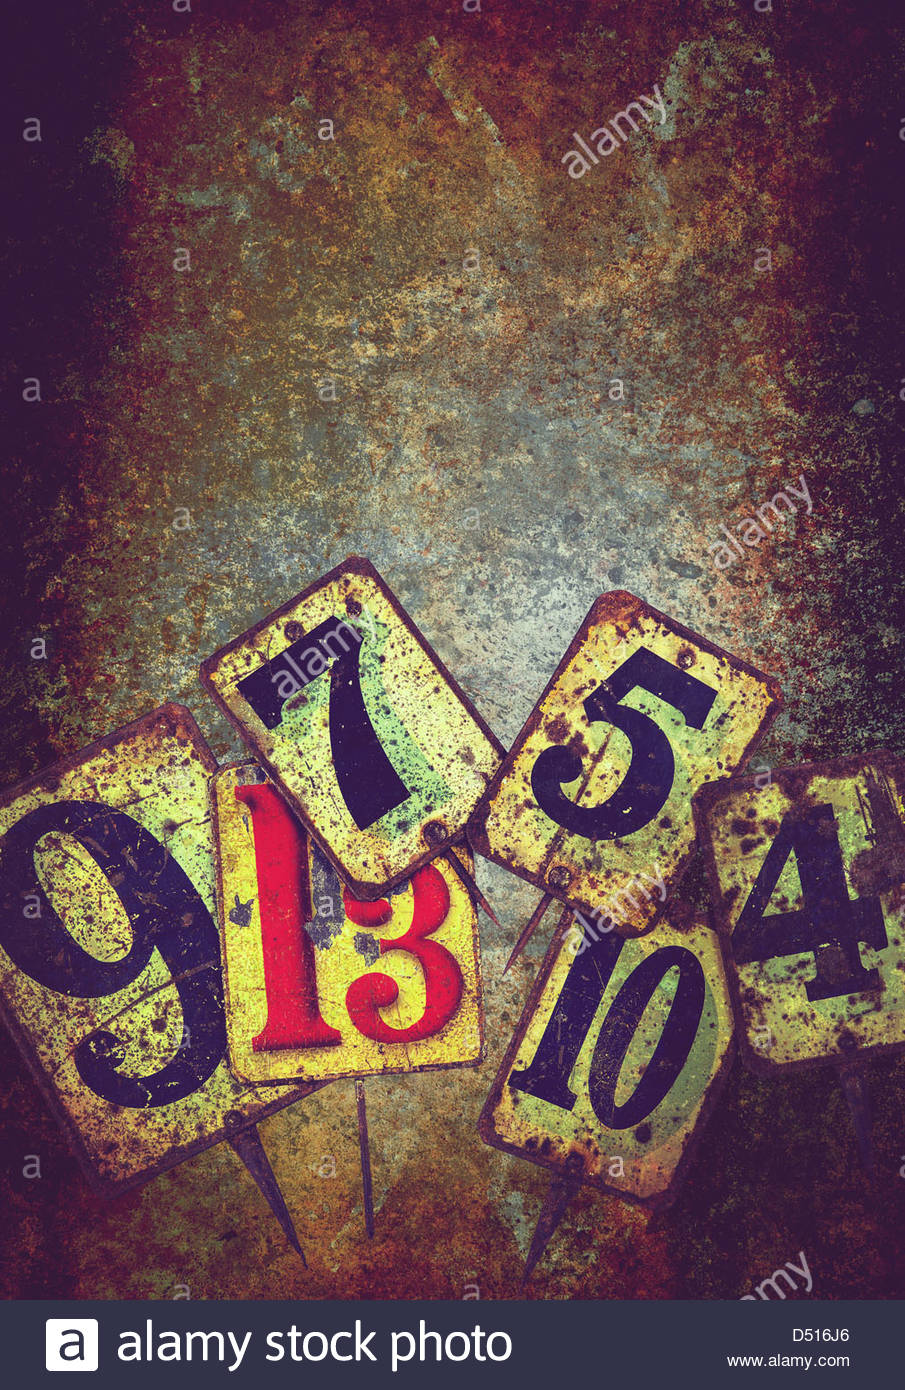 grunge metal numbers - Stock Image